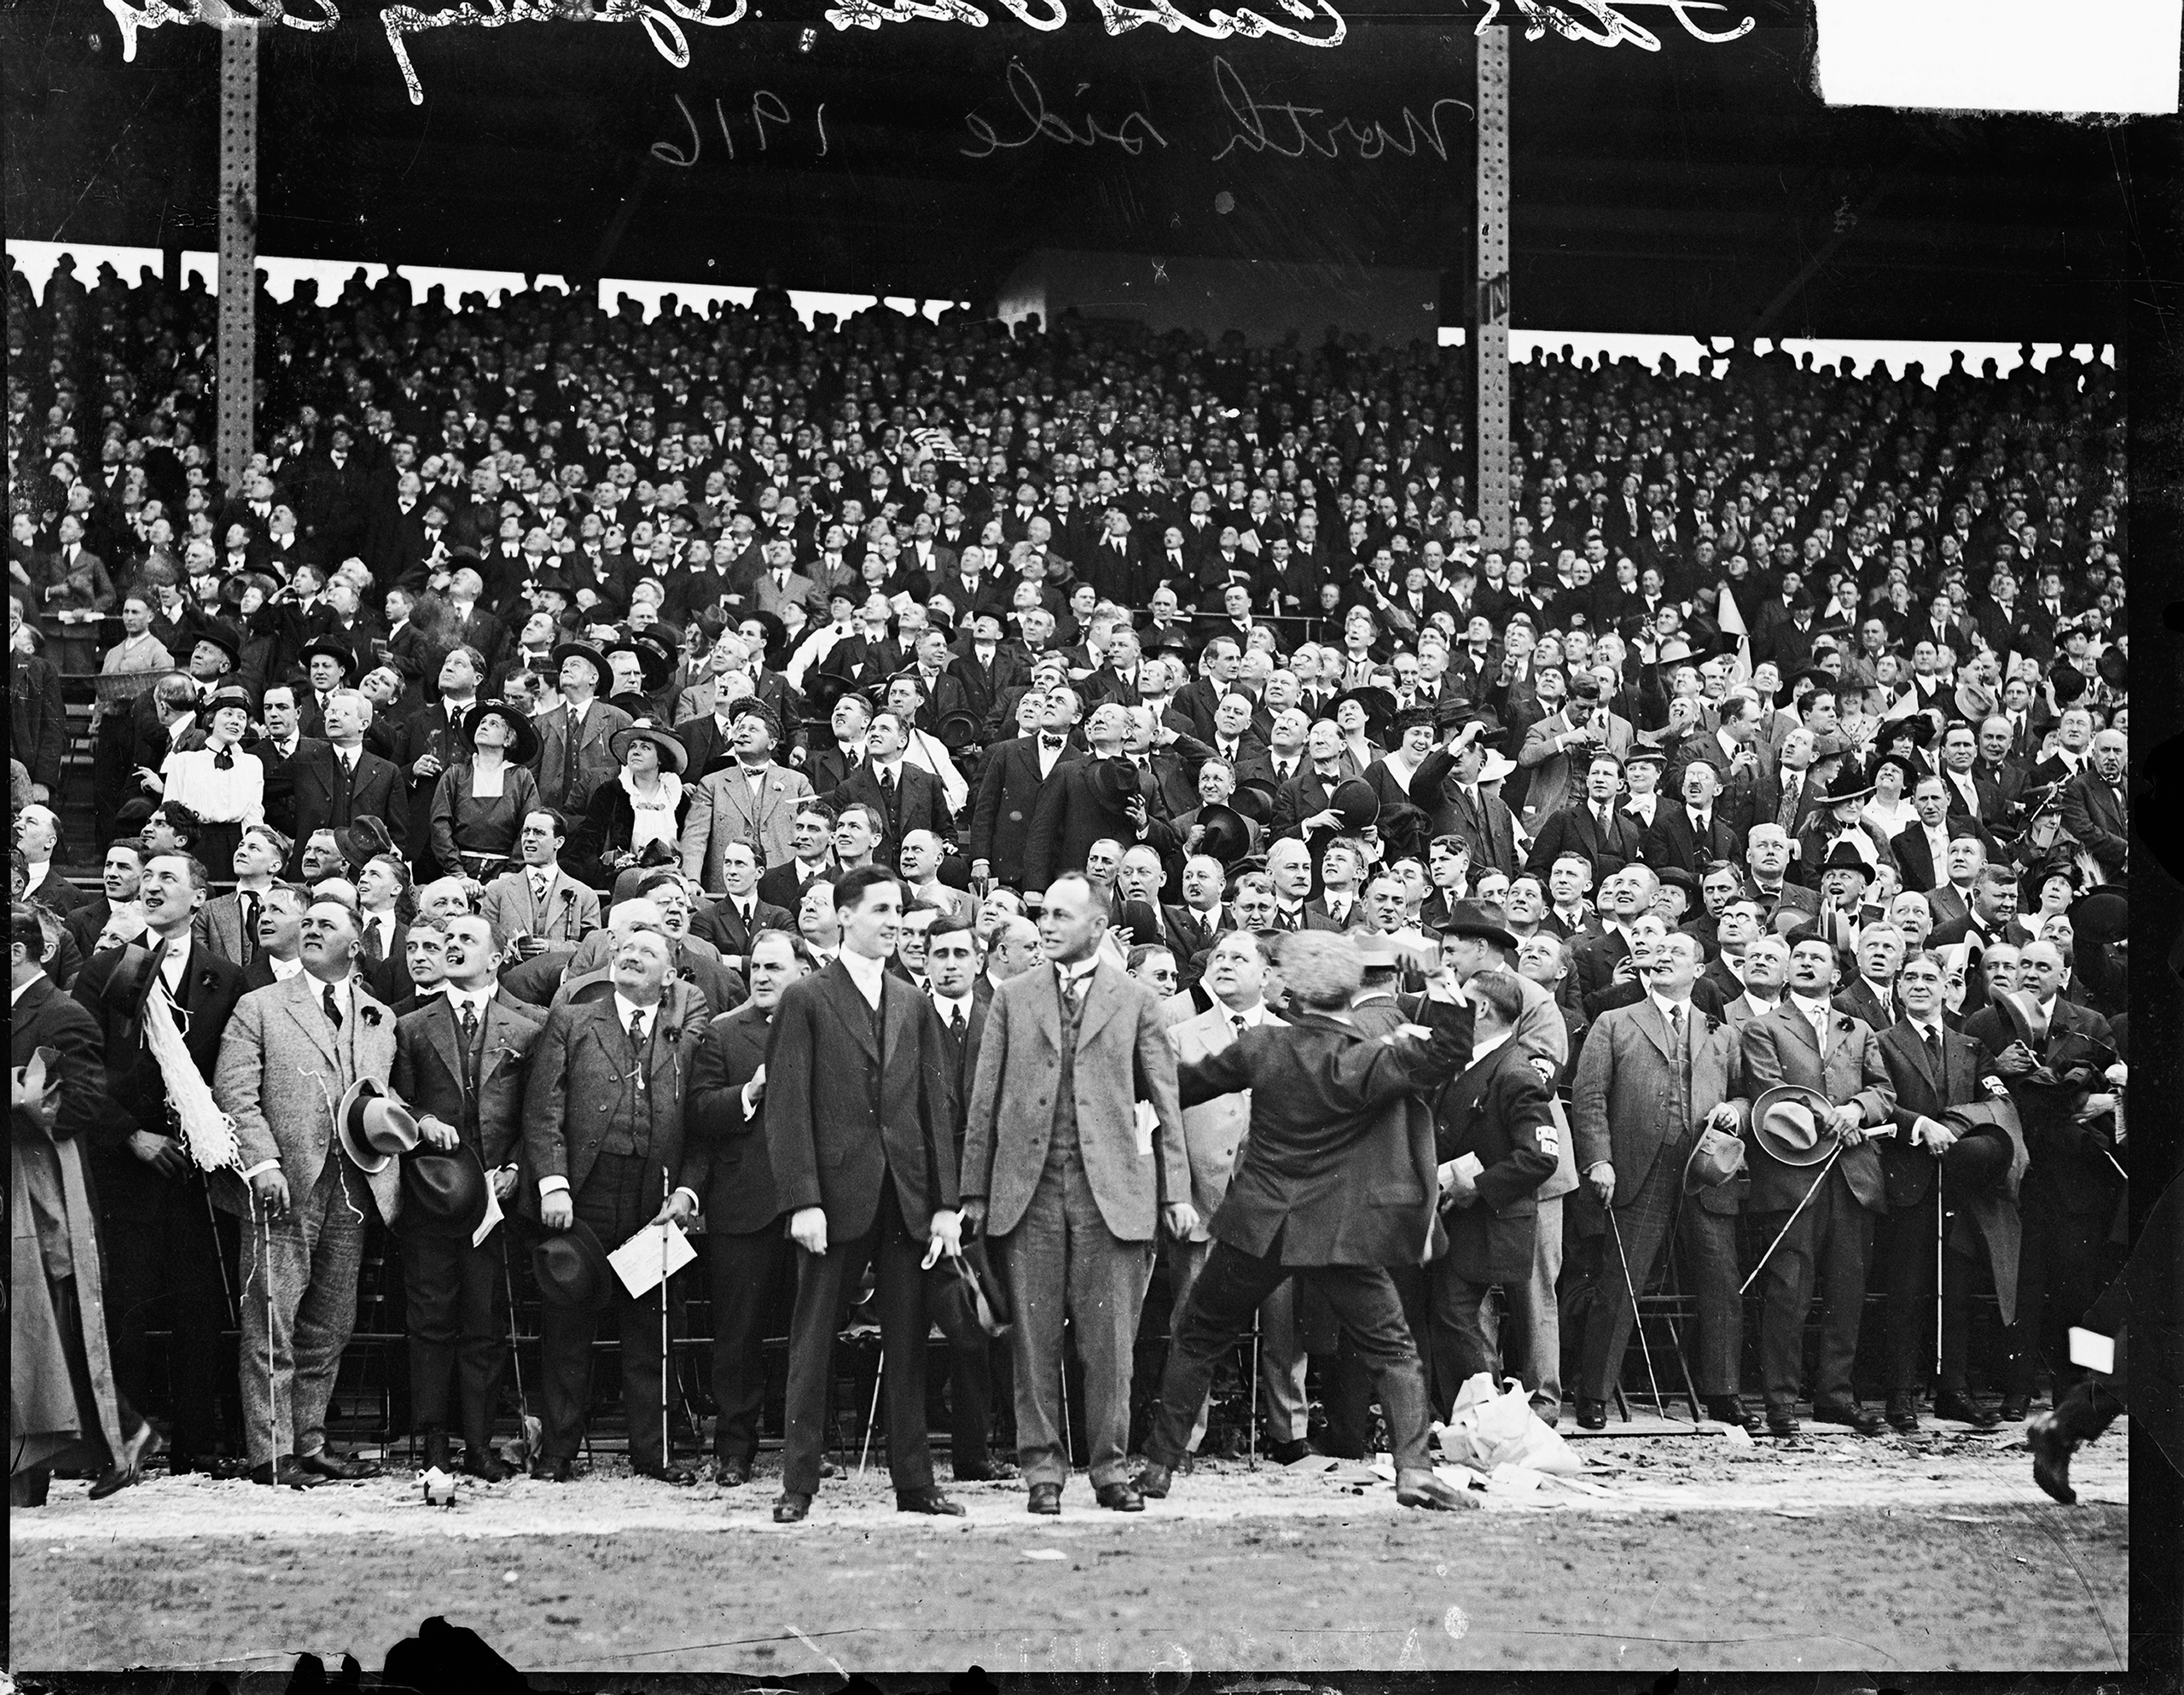 National League's Chicago Cubs baseball game spectators standing in the grandstands on opening day at Weeghman Park, Chicago, 1916.